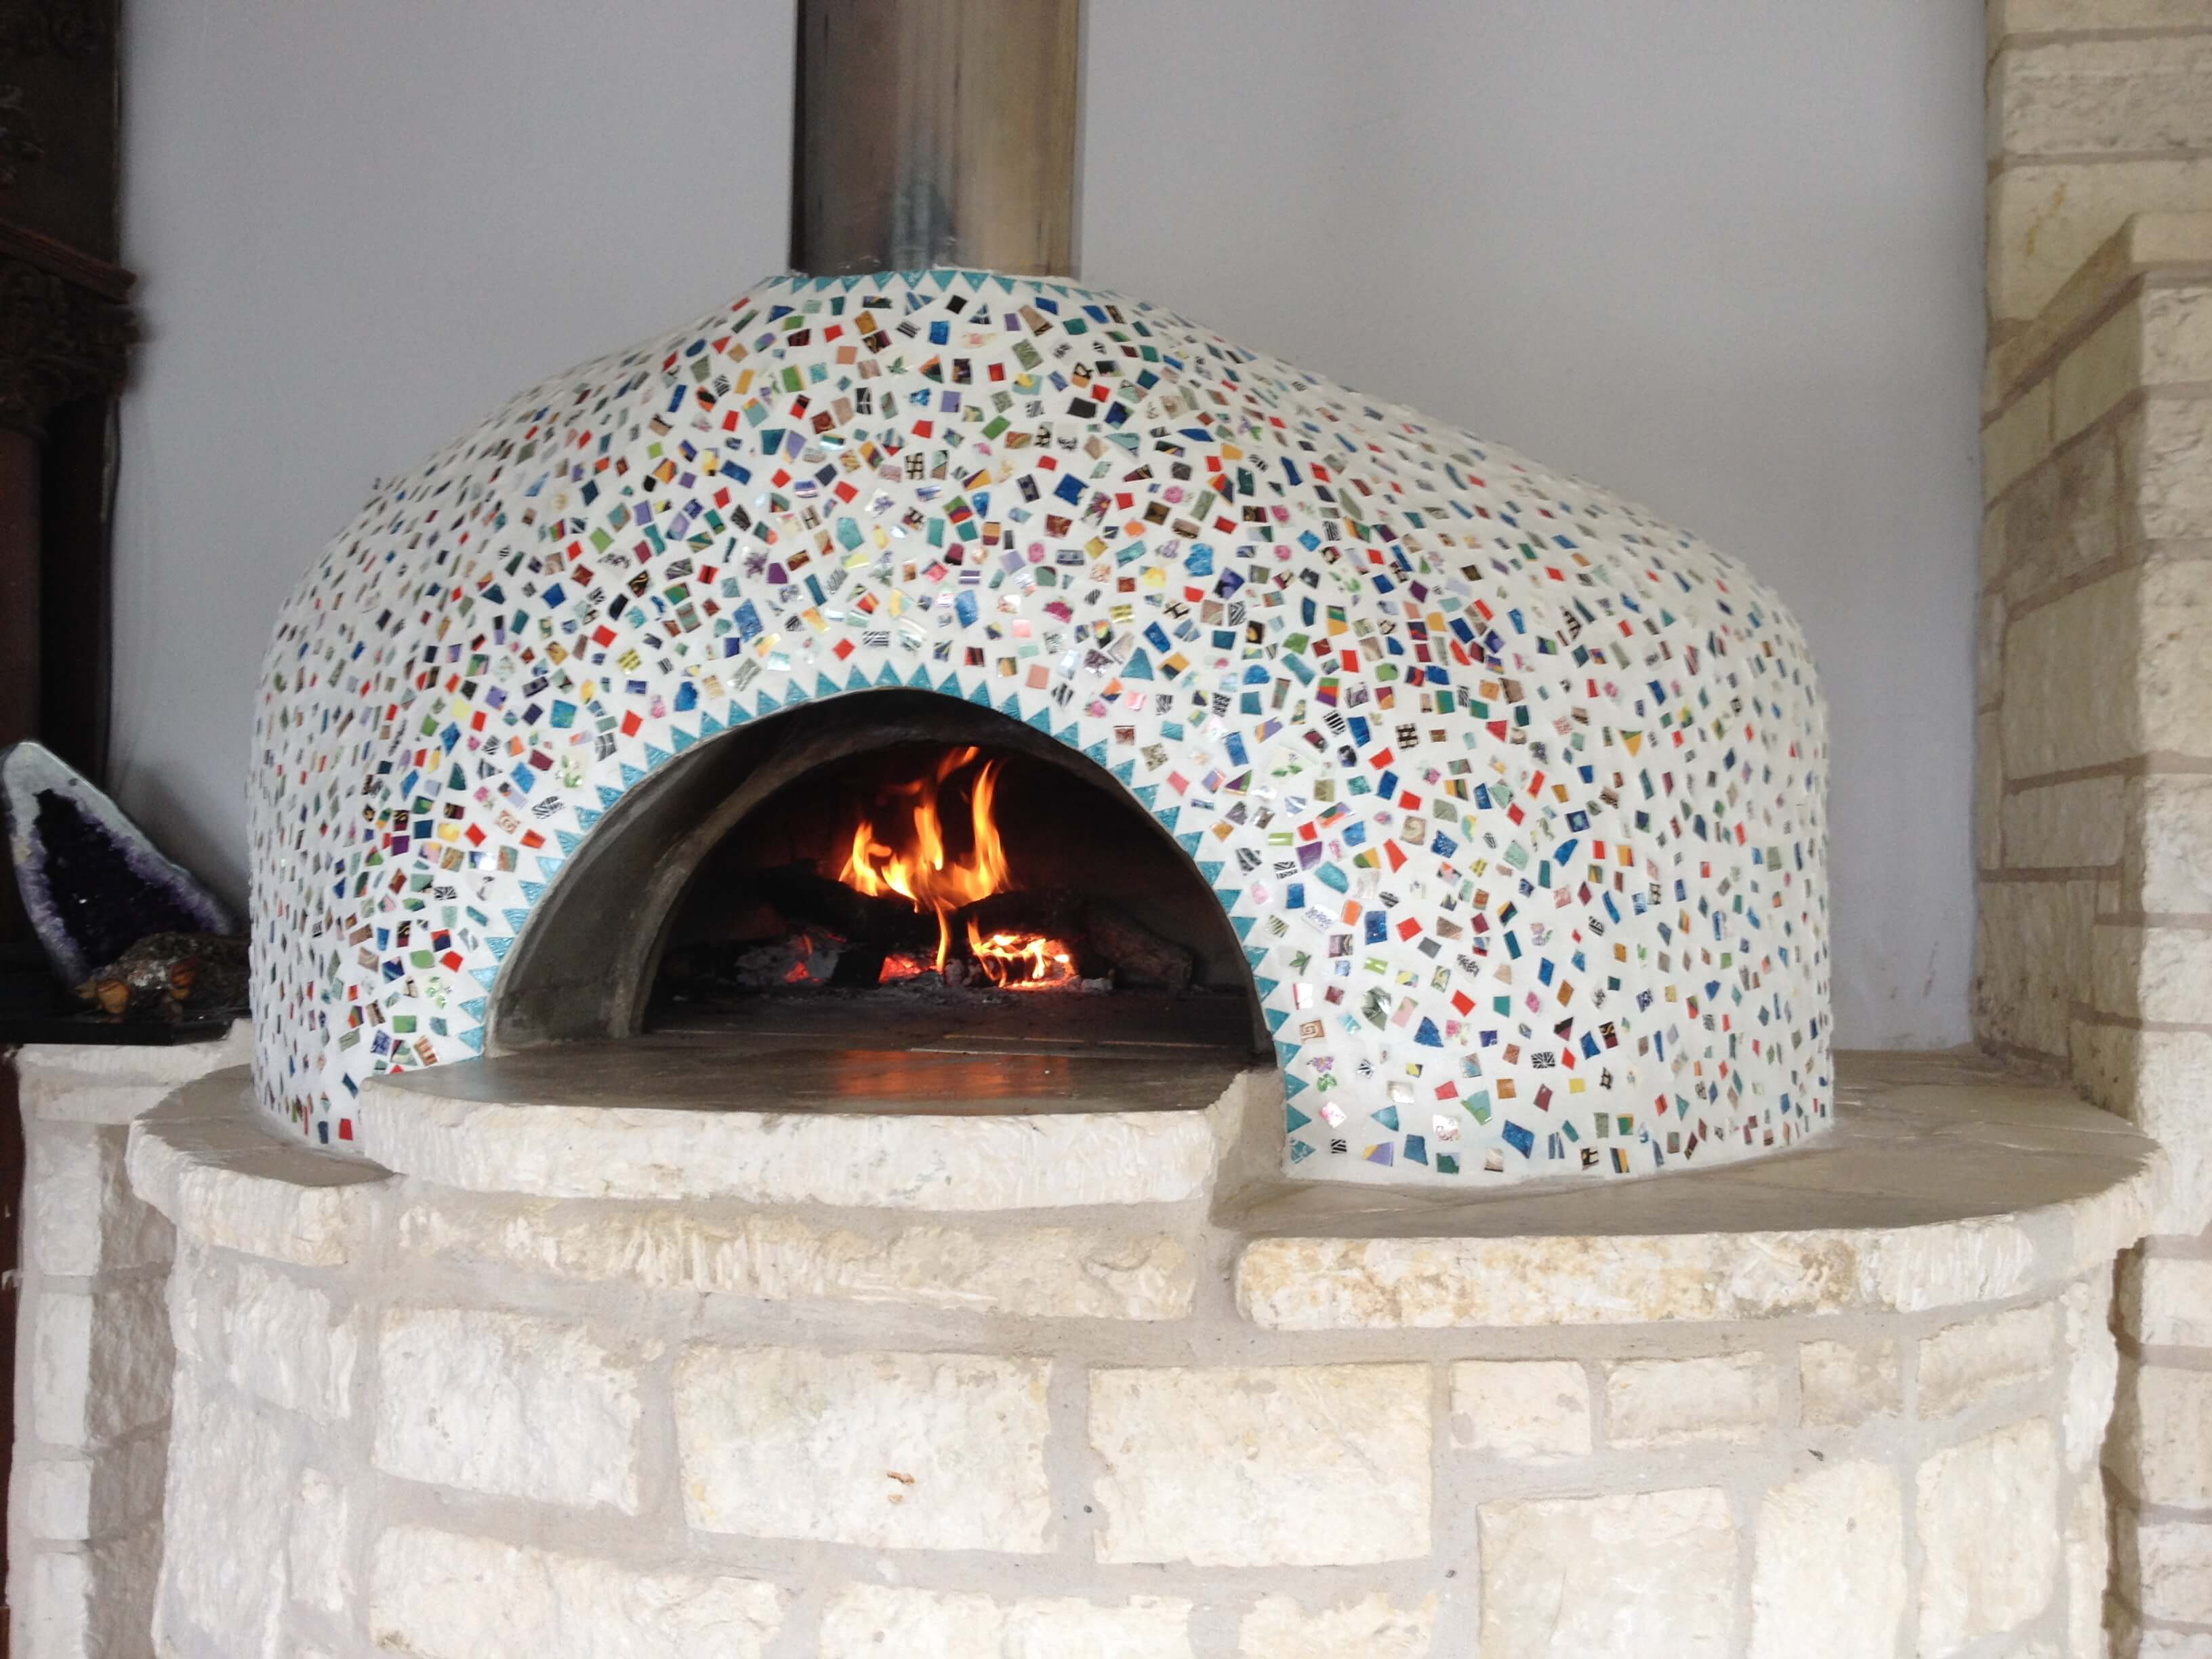 forno bravo residential pizza ovens assembled or kits. Black Bedroom Furniture Sets. Home Design Ideas